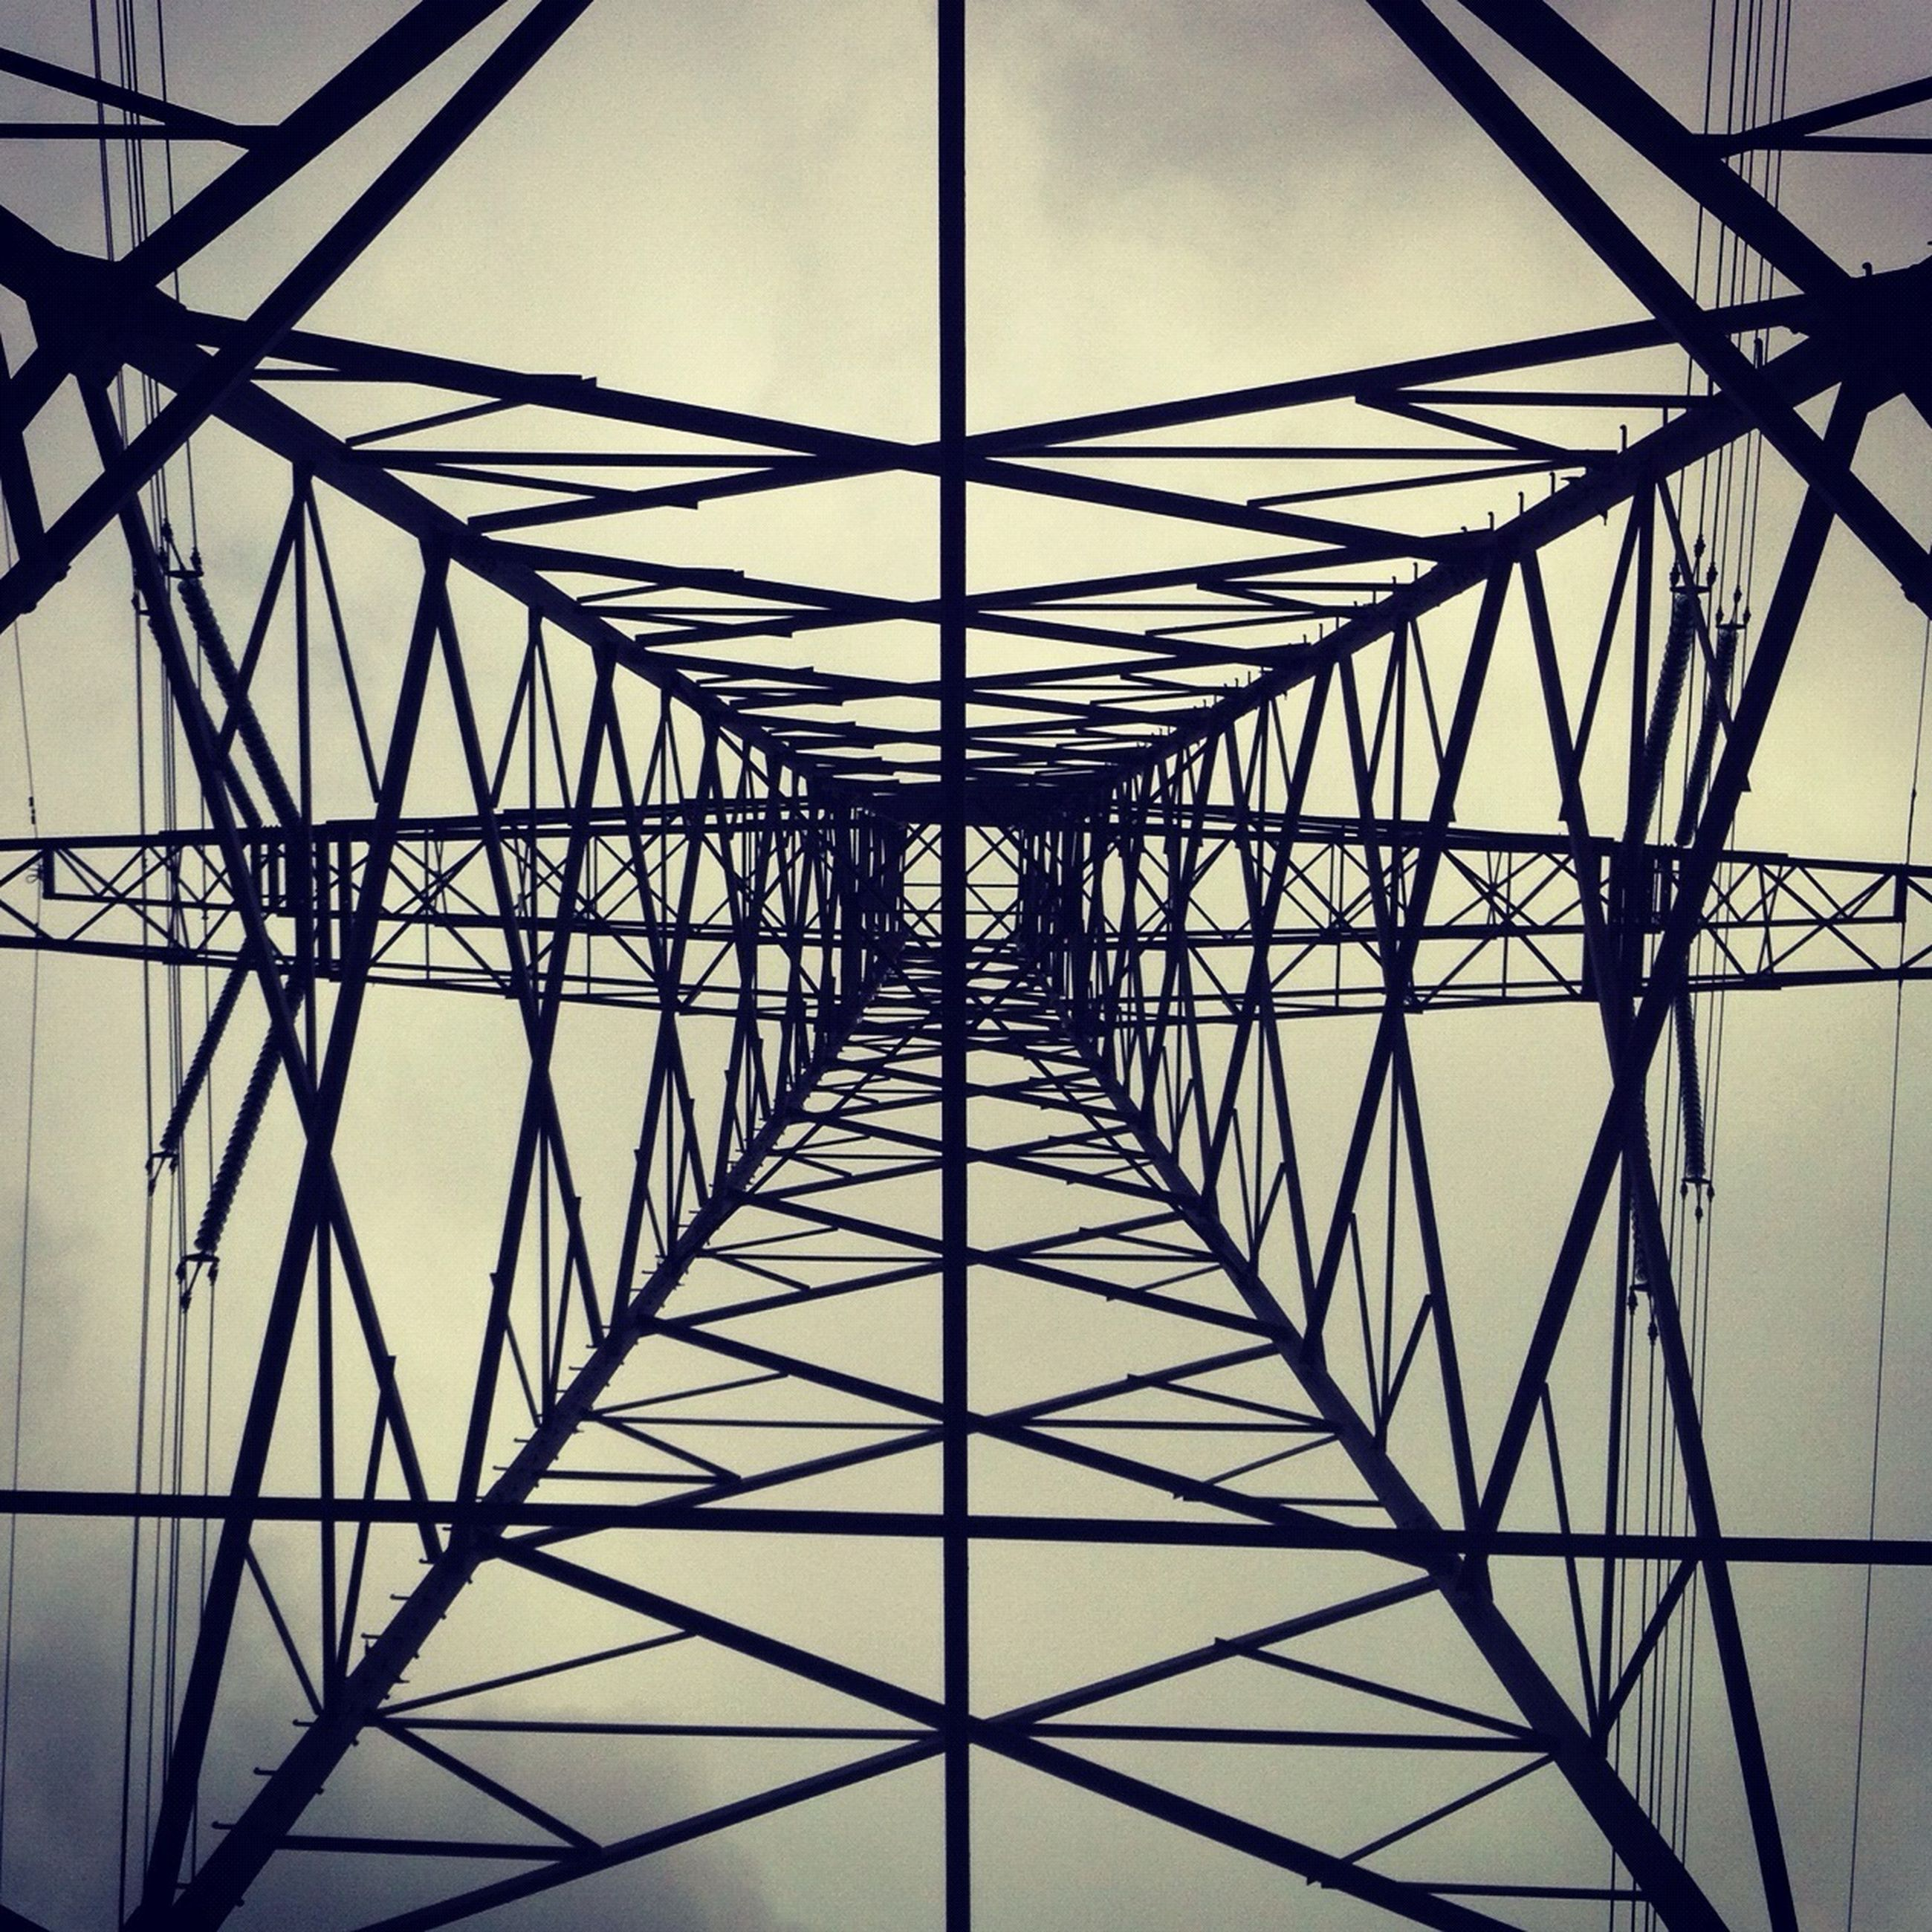 low angle view, connection, electricity pylon, power supply, power line, electricity, fuel and power generation, built structure, cable, metal, technology, sky, architecture, engineering, clear sky, no people, day, metallic, outdoors, directly below